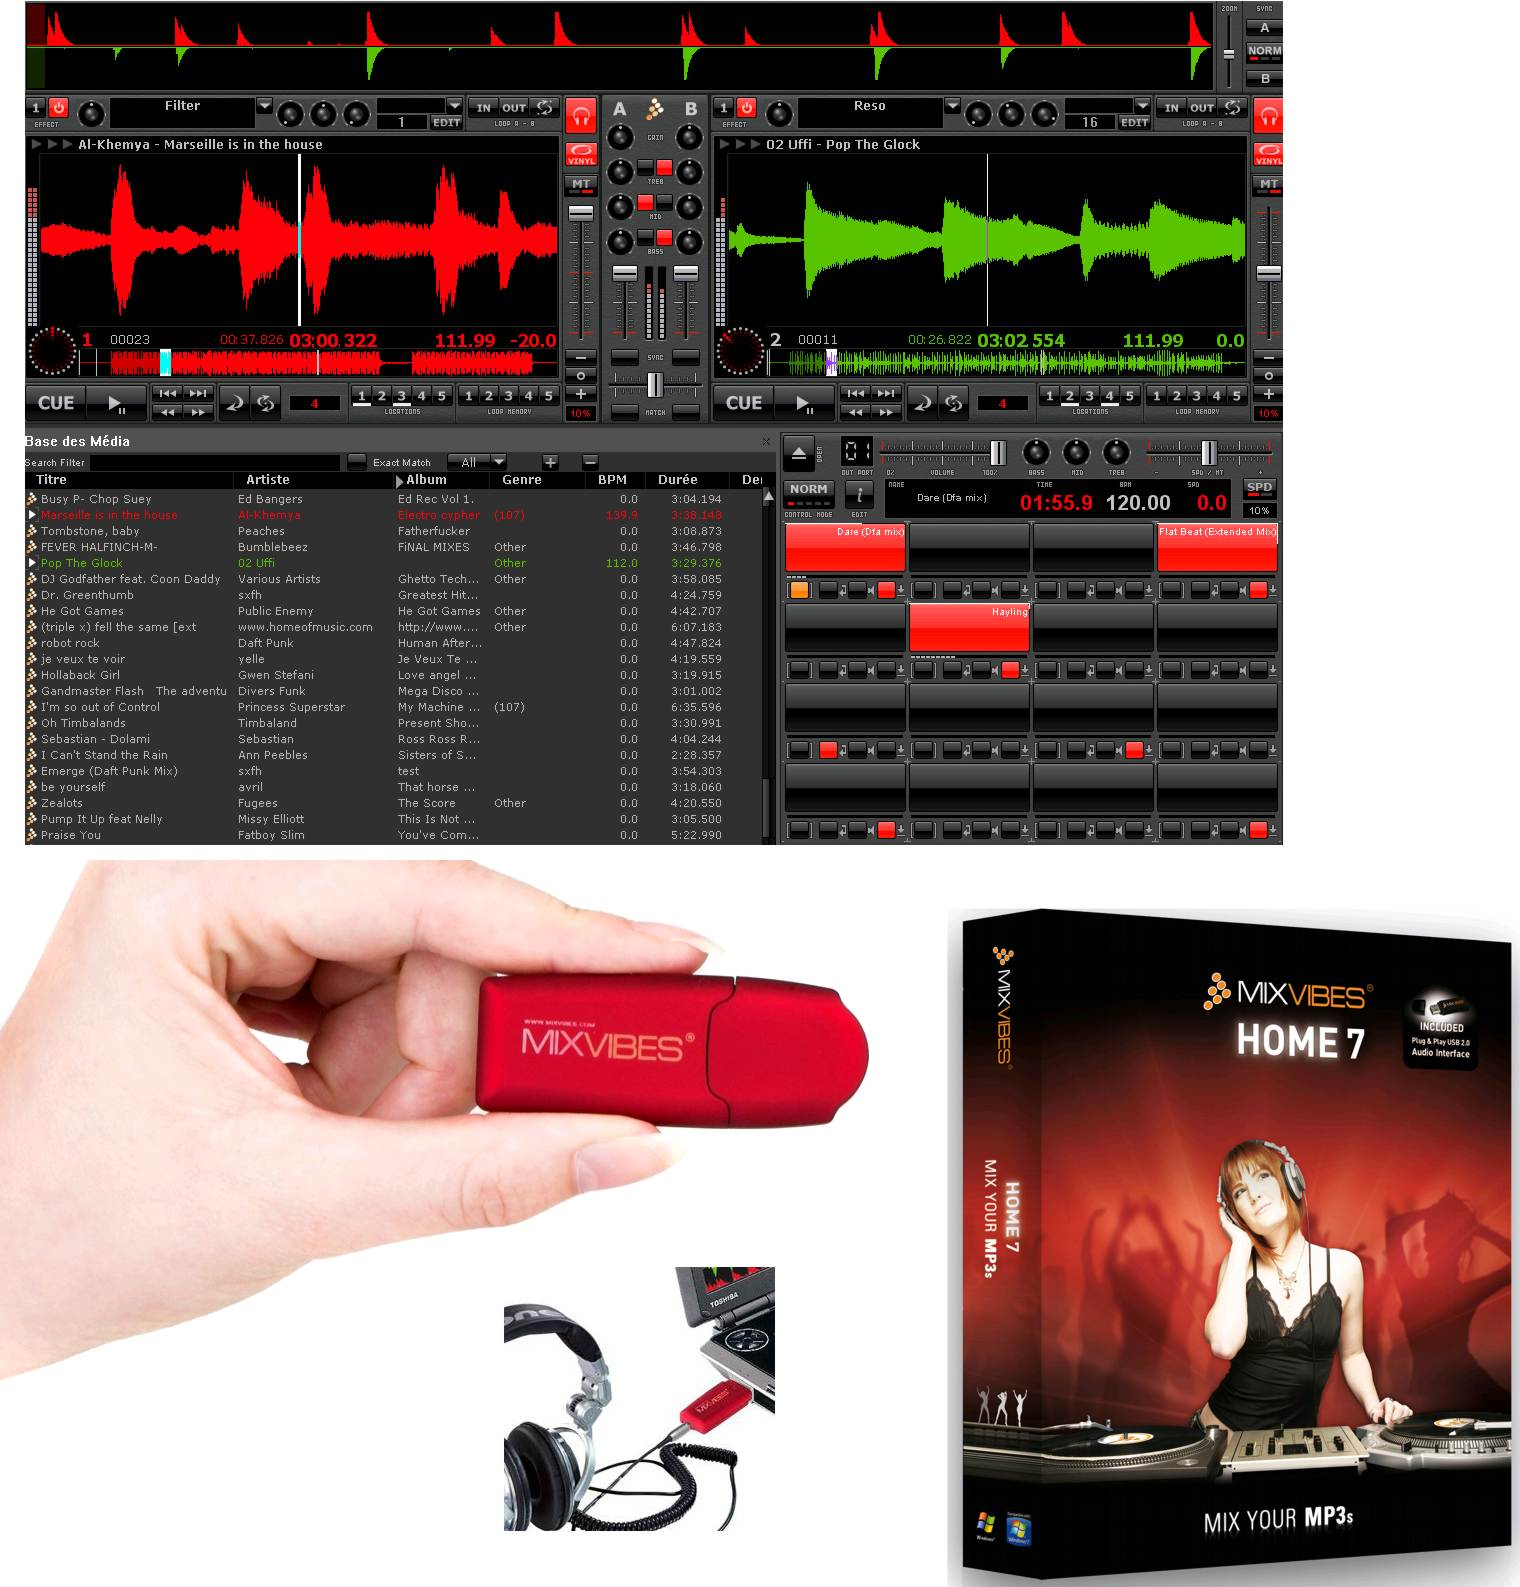 Mix Vibes Home7 Dj Software + Usb Audio Interface For Free! Mixing Your Favorite Songs Has... by Mixvibes